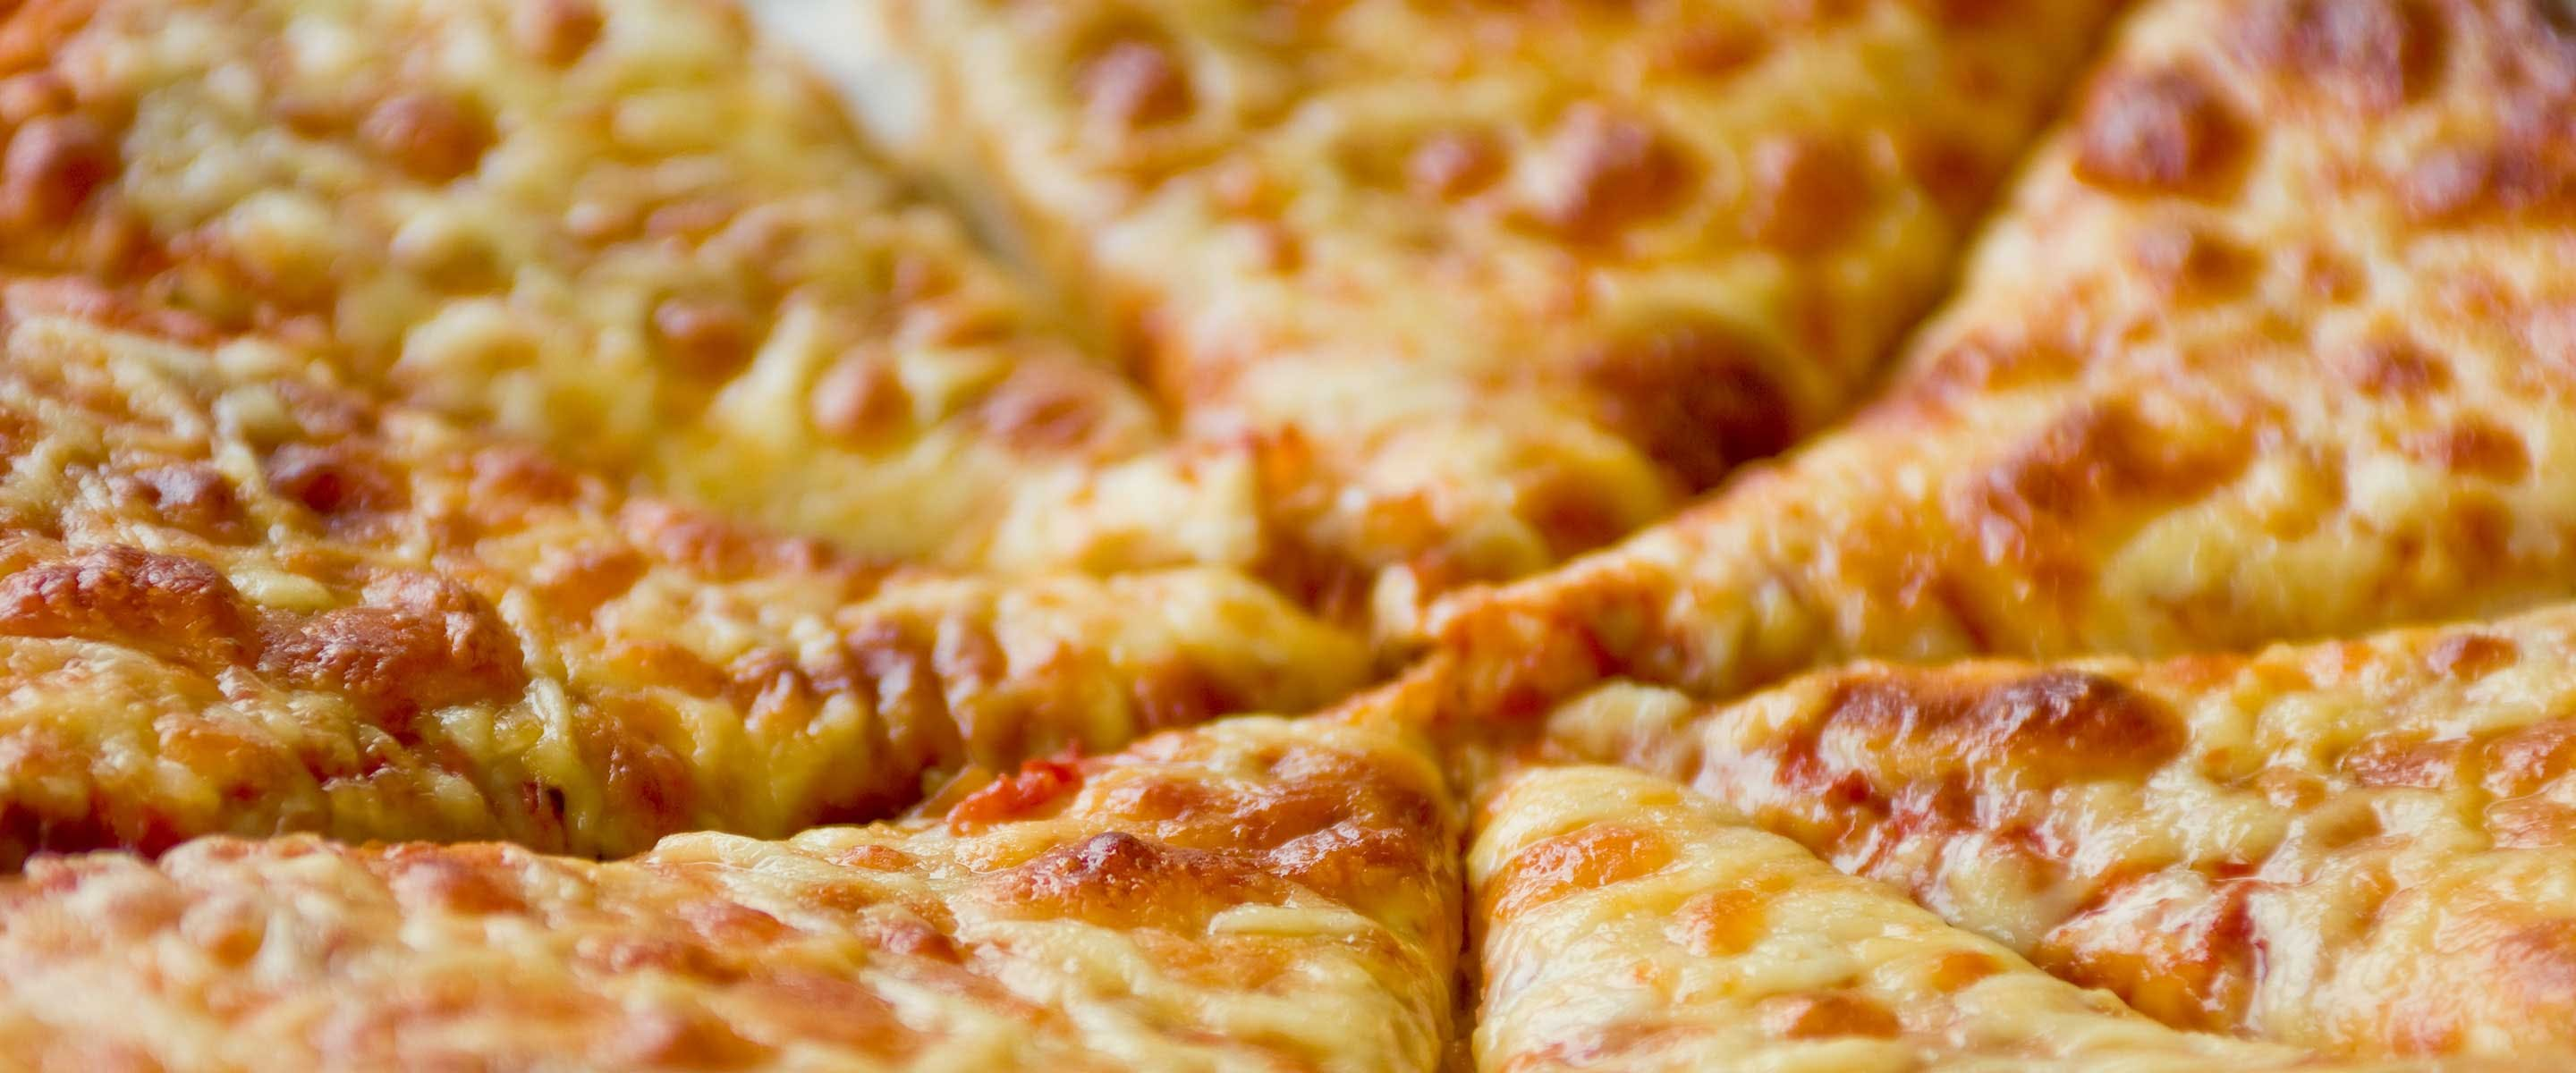 delicious warm cheese pizza ready to eat